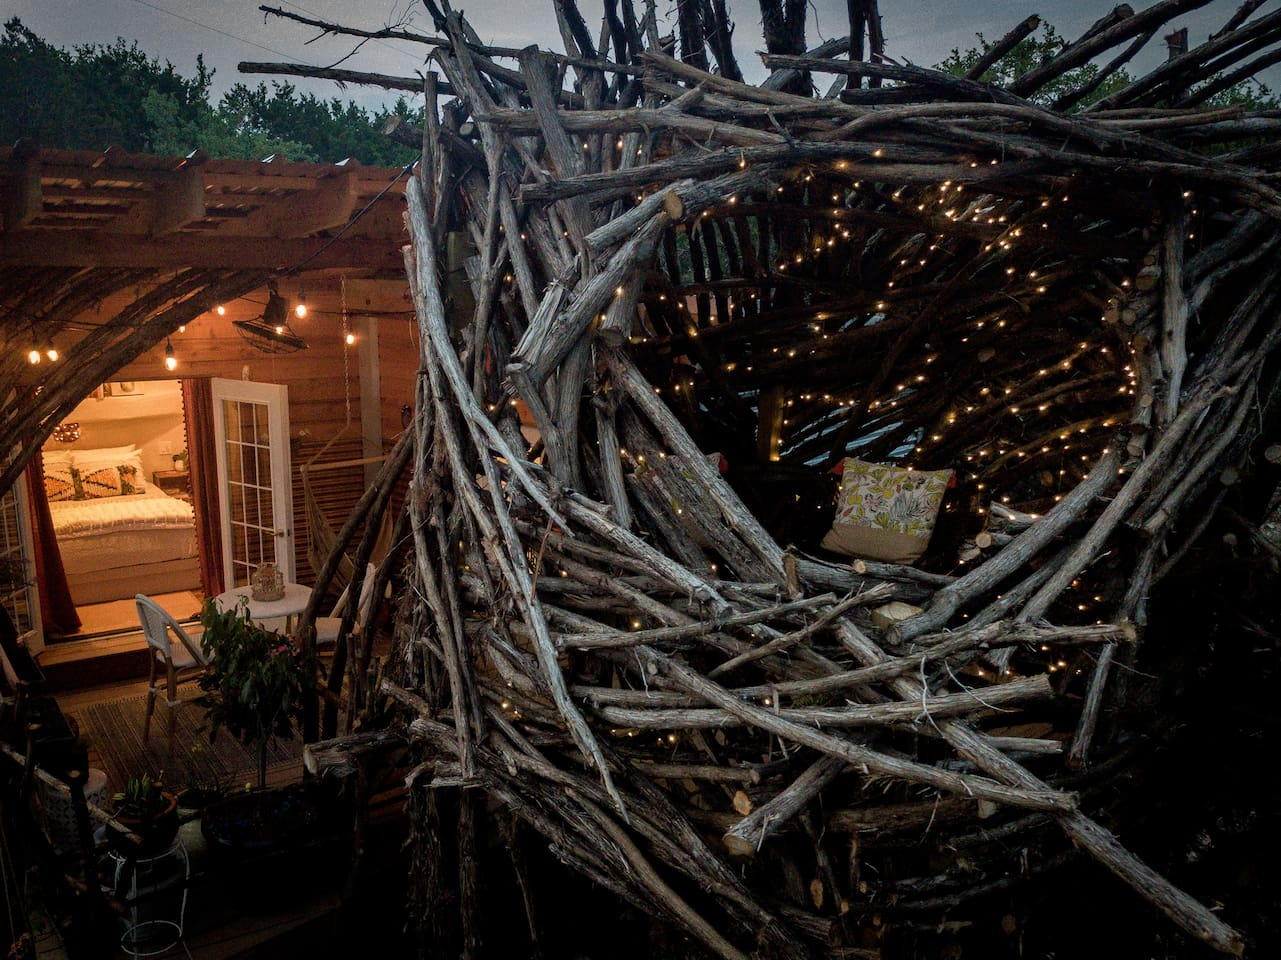 Climb into the nest tower from your secluded patio